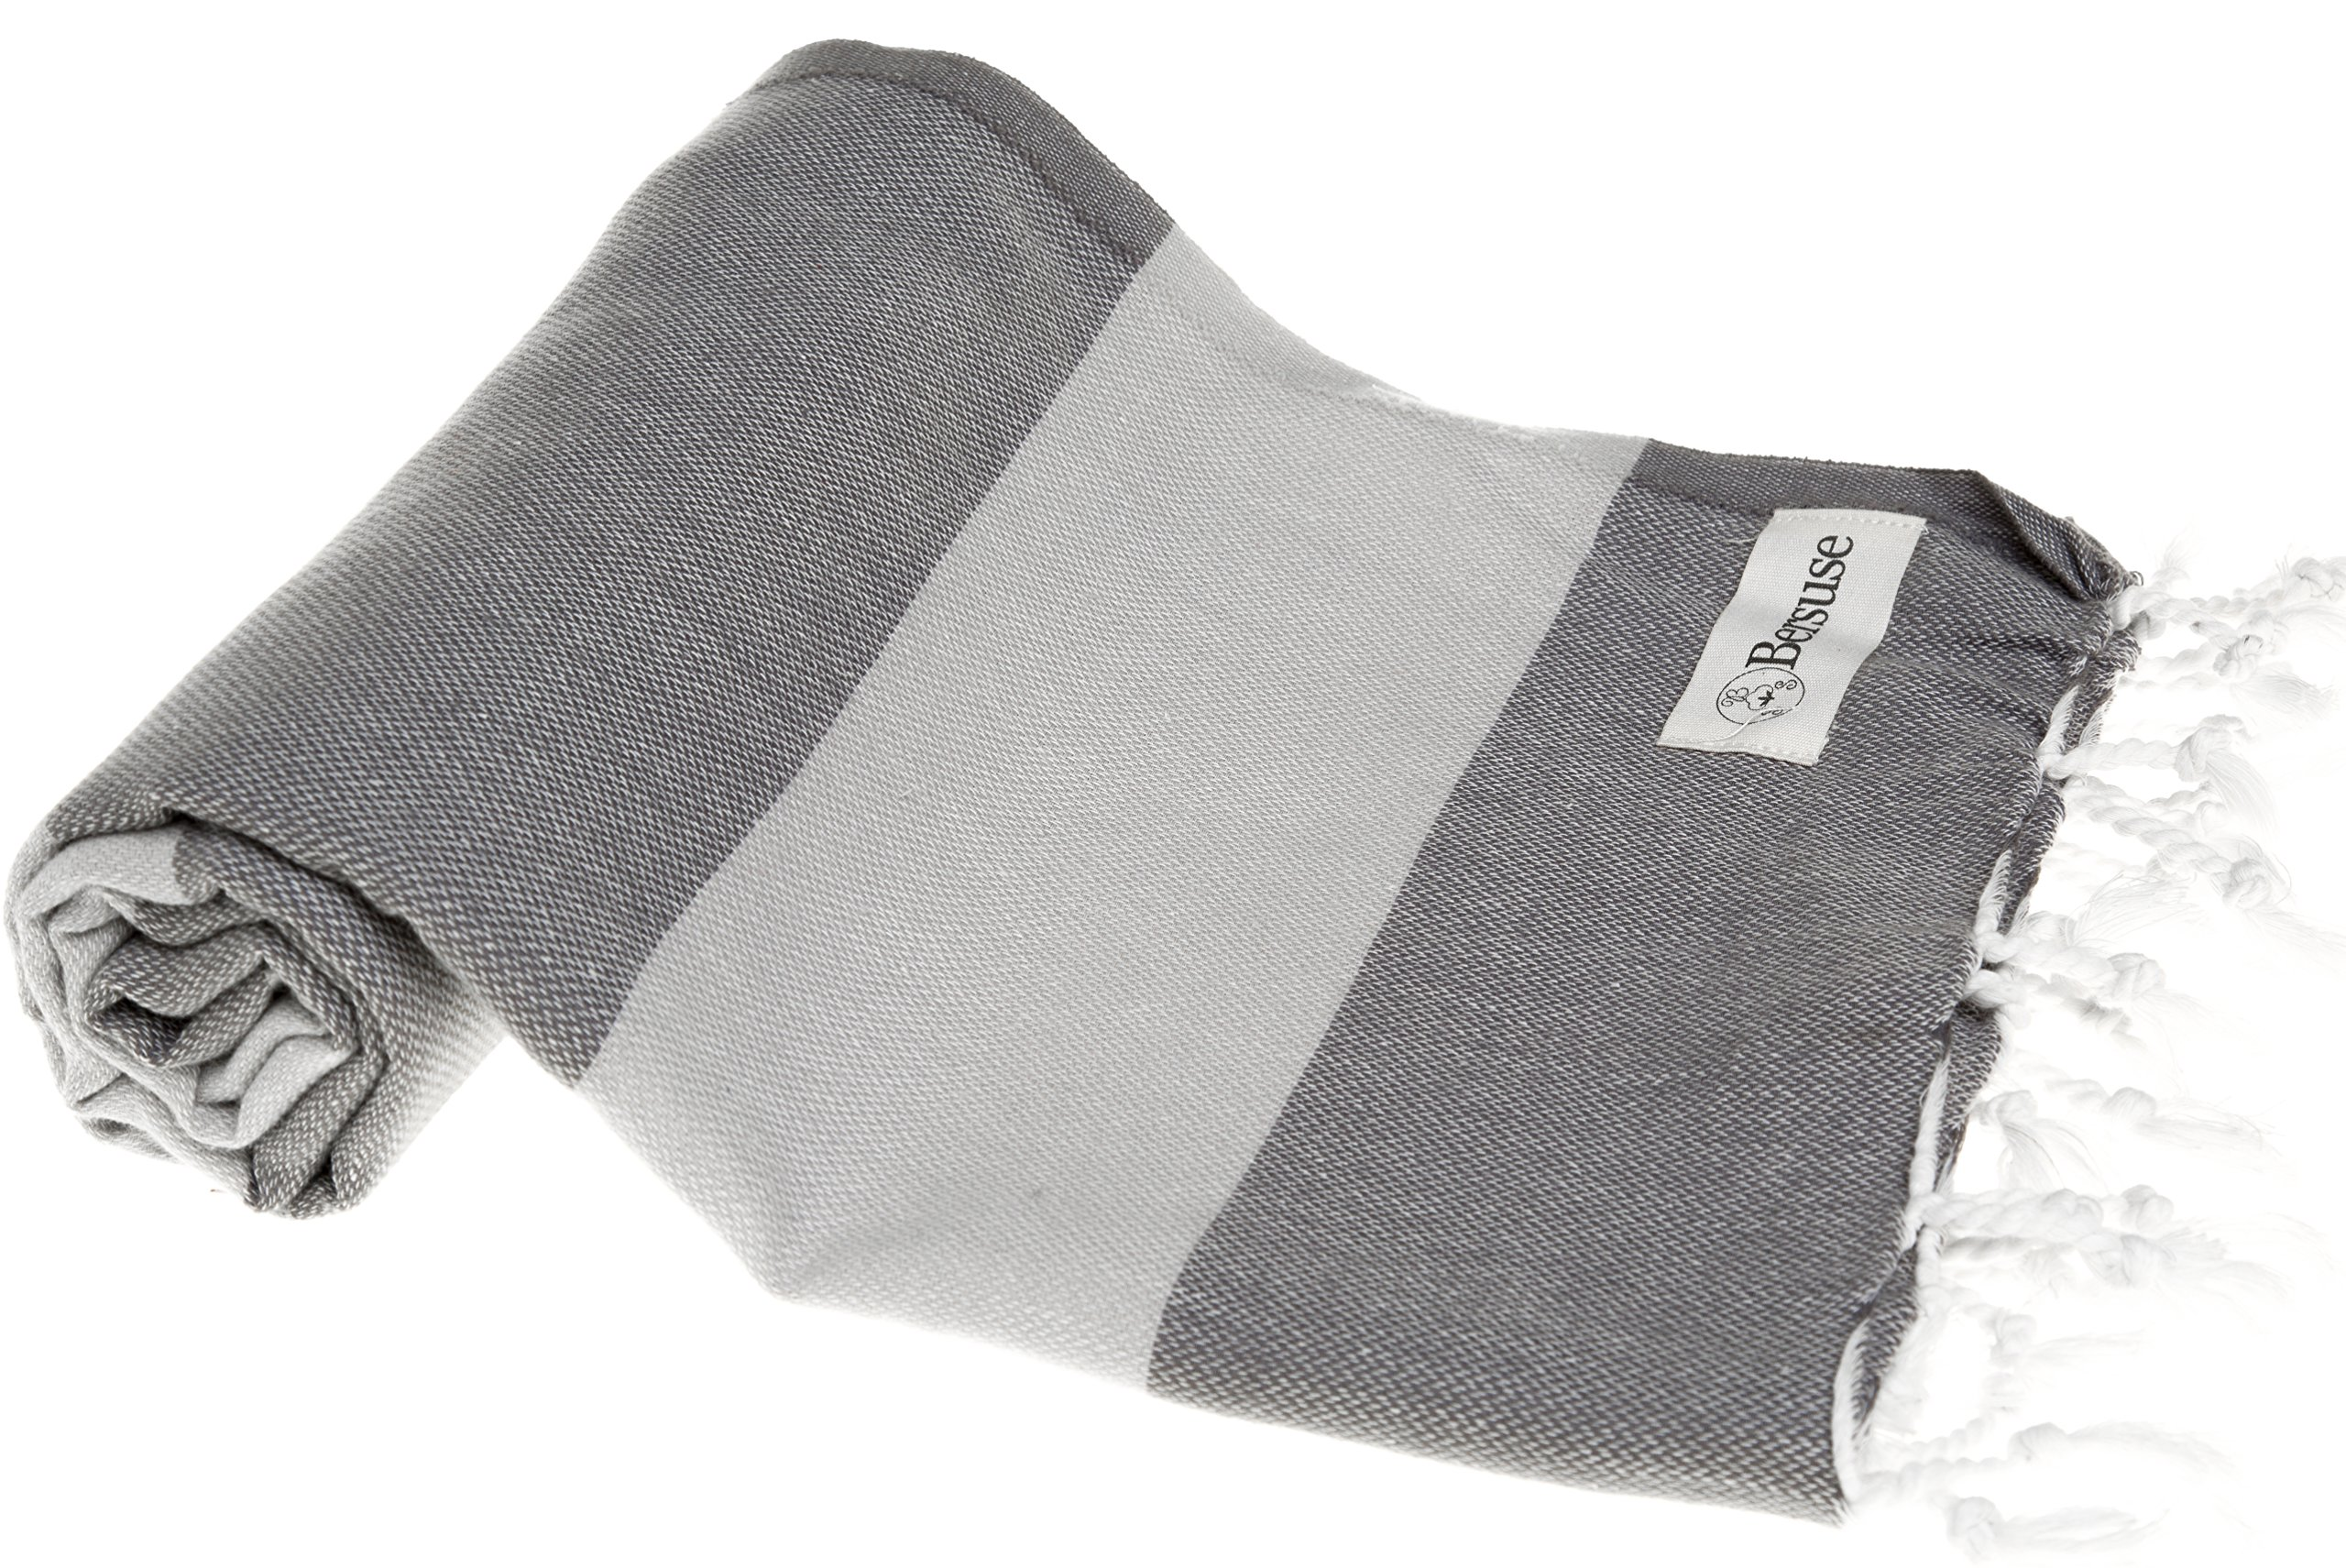 Bersuse 100% Cotton Cayman Turkish Towel-37X70 Inches, Anthracite/Silver